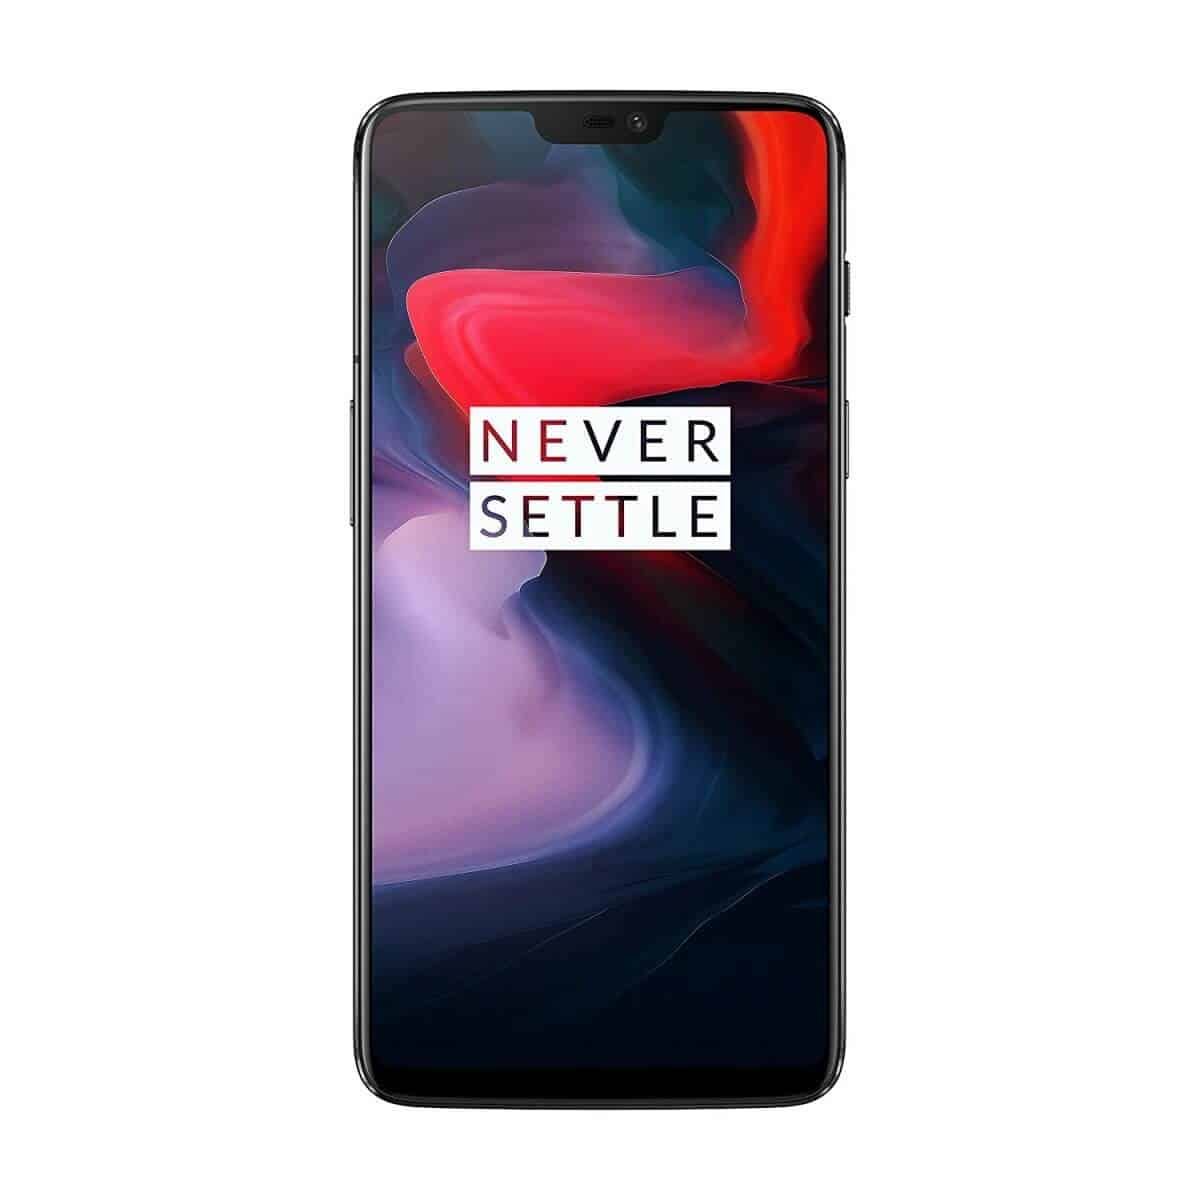 Ram Price >> OnePlus 6 Renders & Price Leak On Amazon | Androidheadlines.com